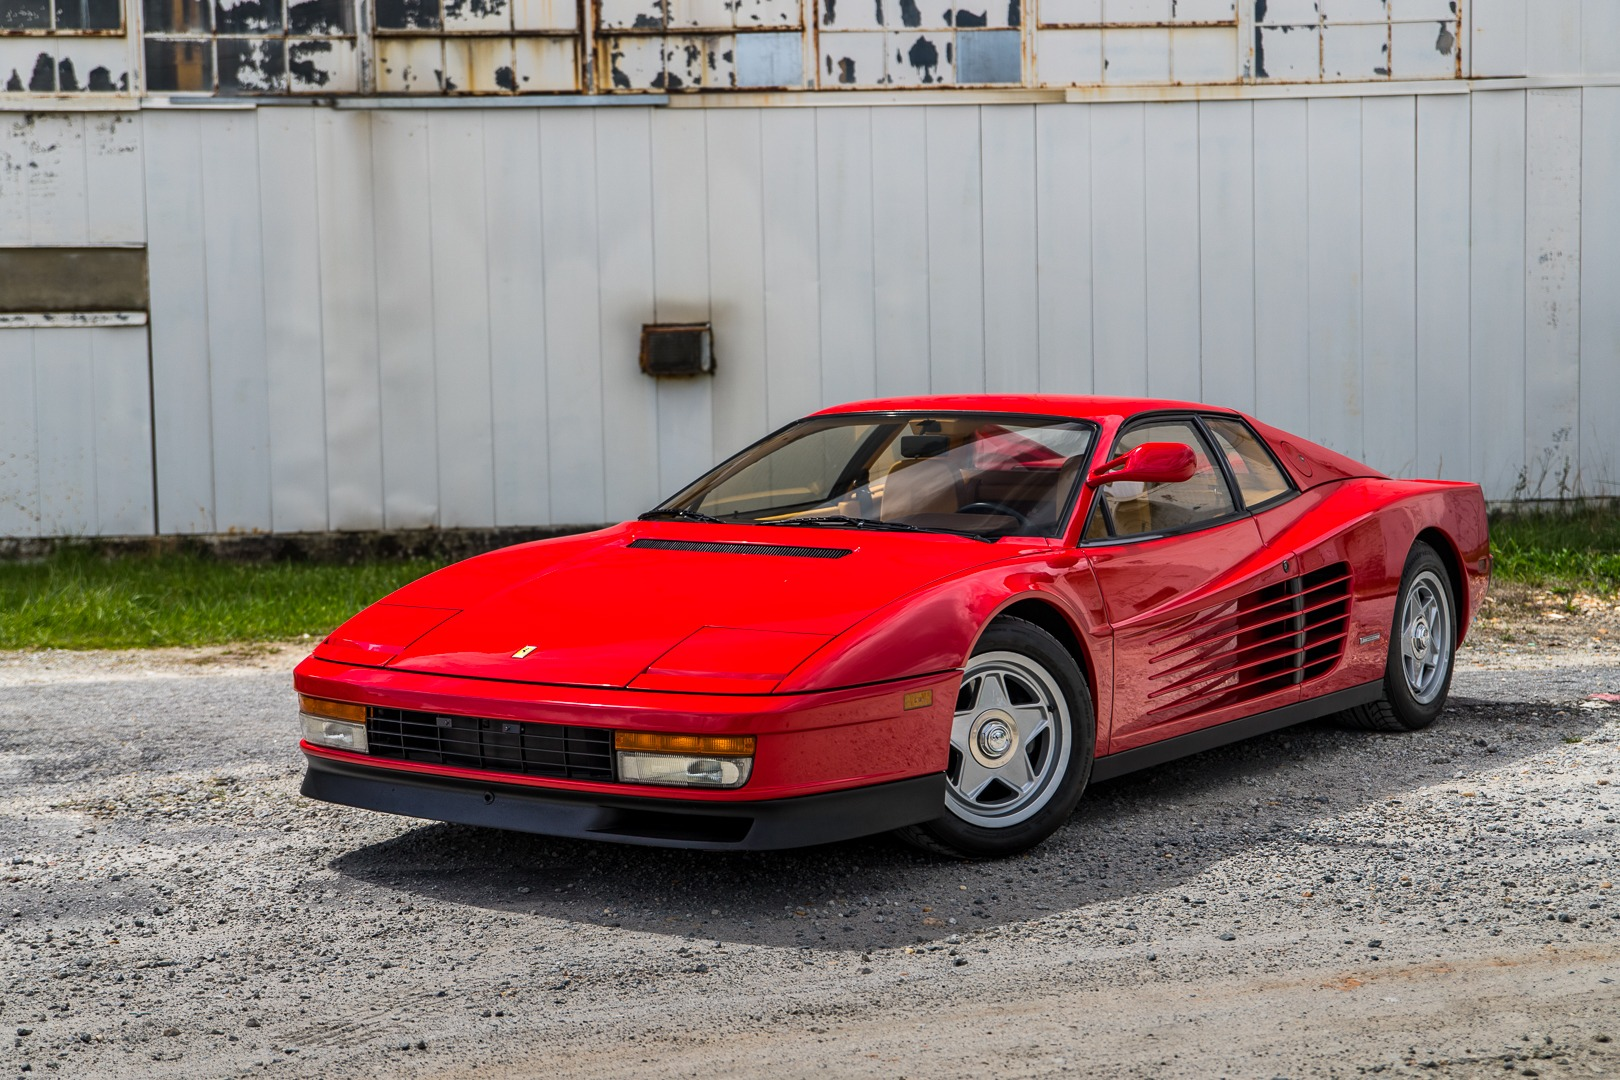 1986 Ferrari Testarossa Flying Mirror.